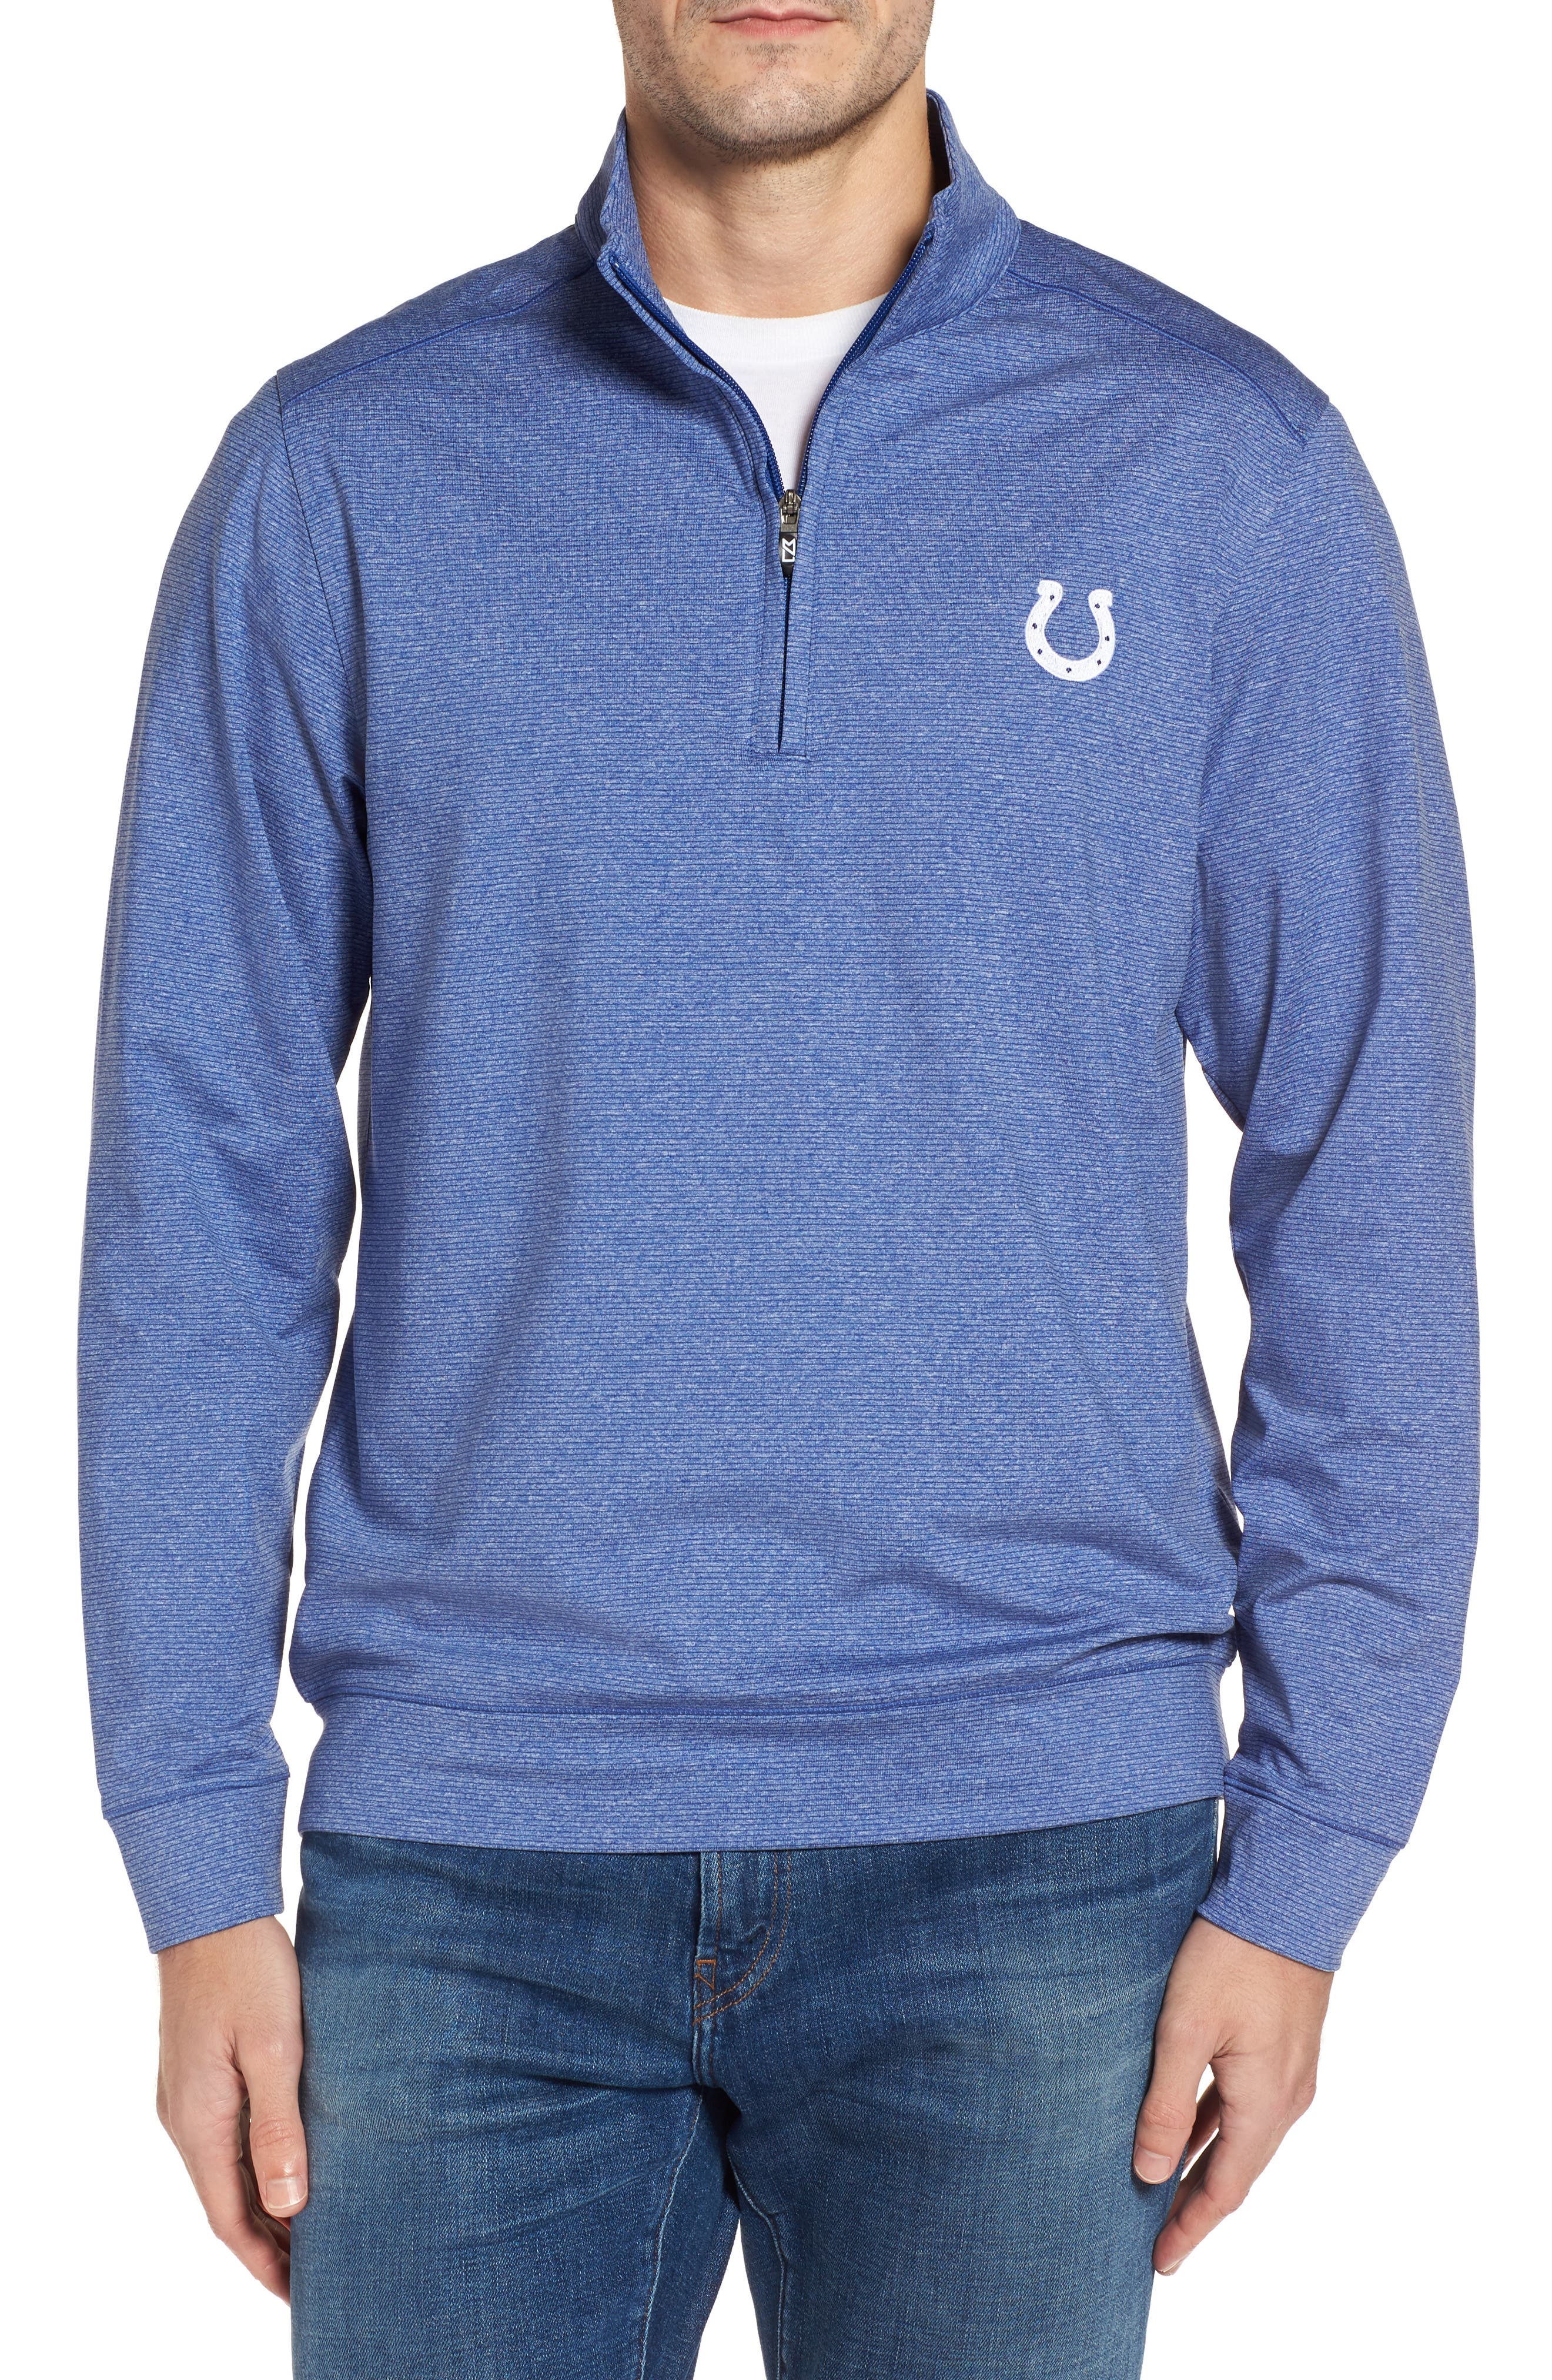 Main Image - Cutter & Buck Shoreline - Indianapolis Colts Half Zip Pullover